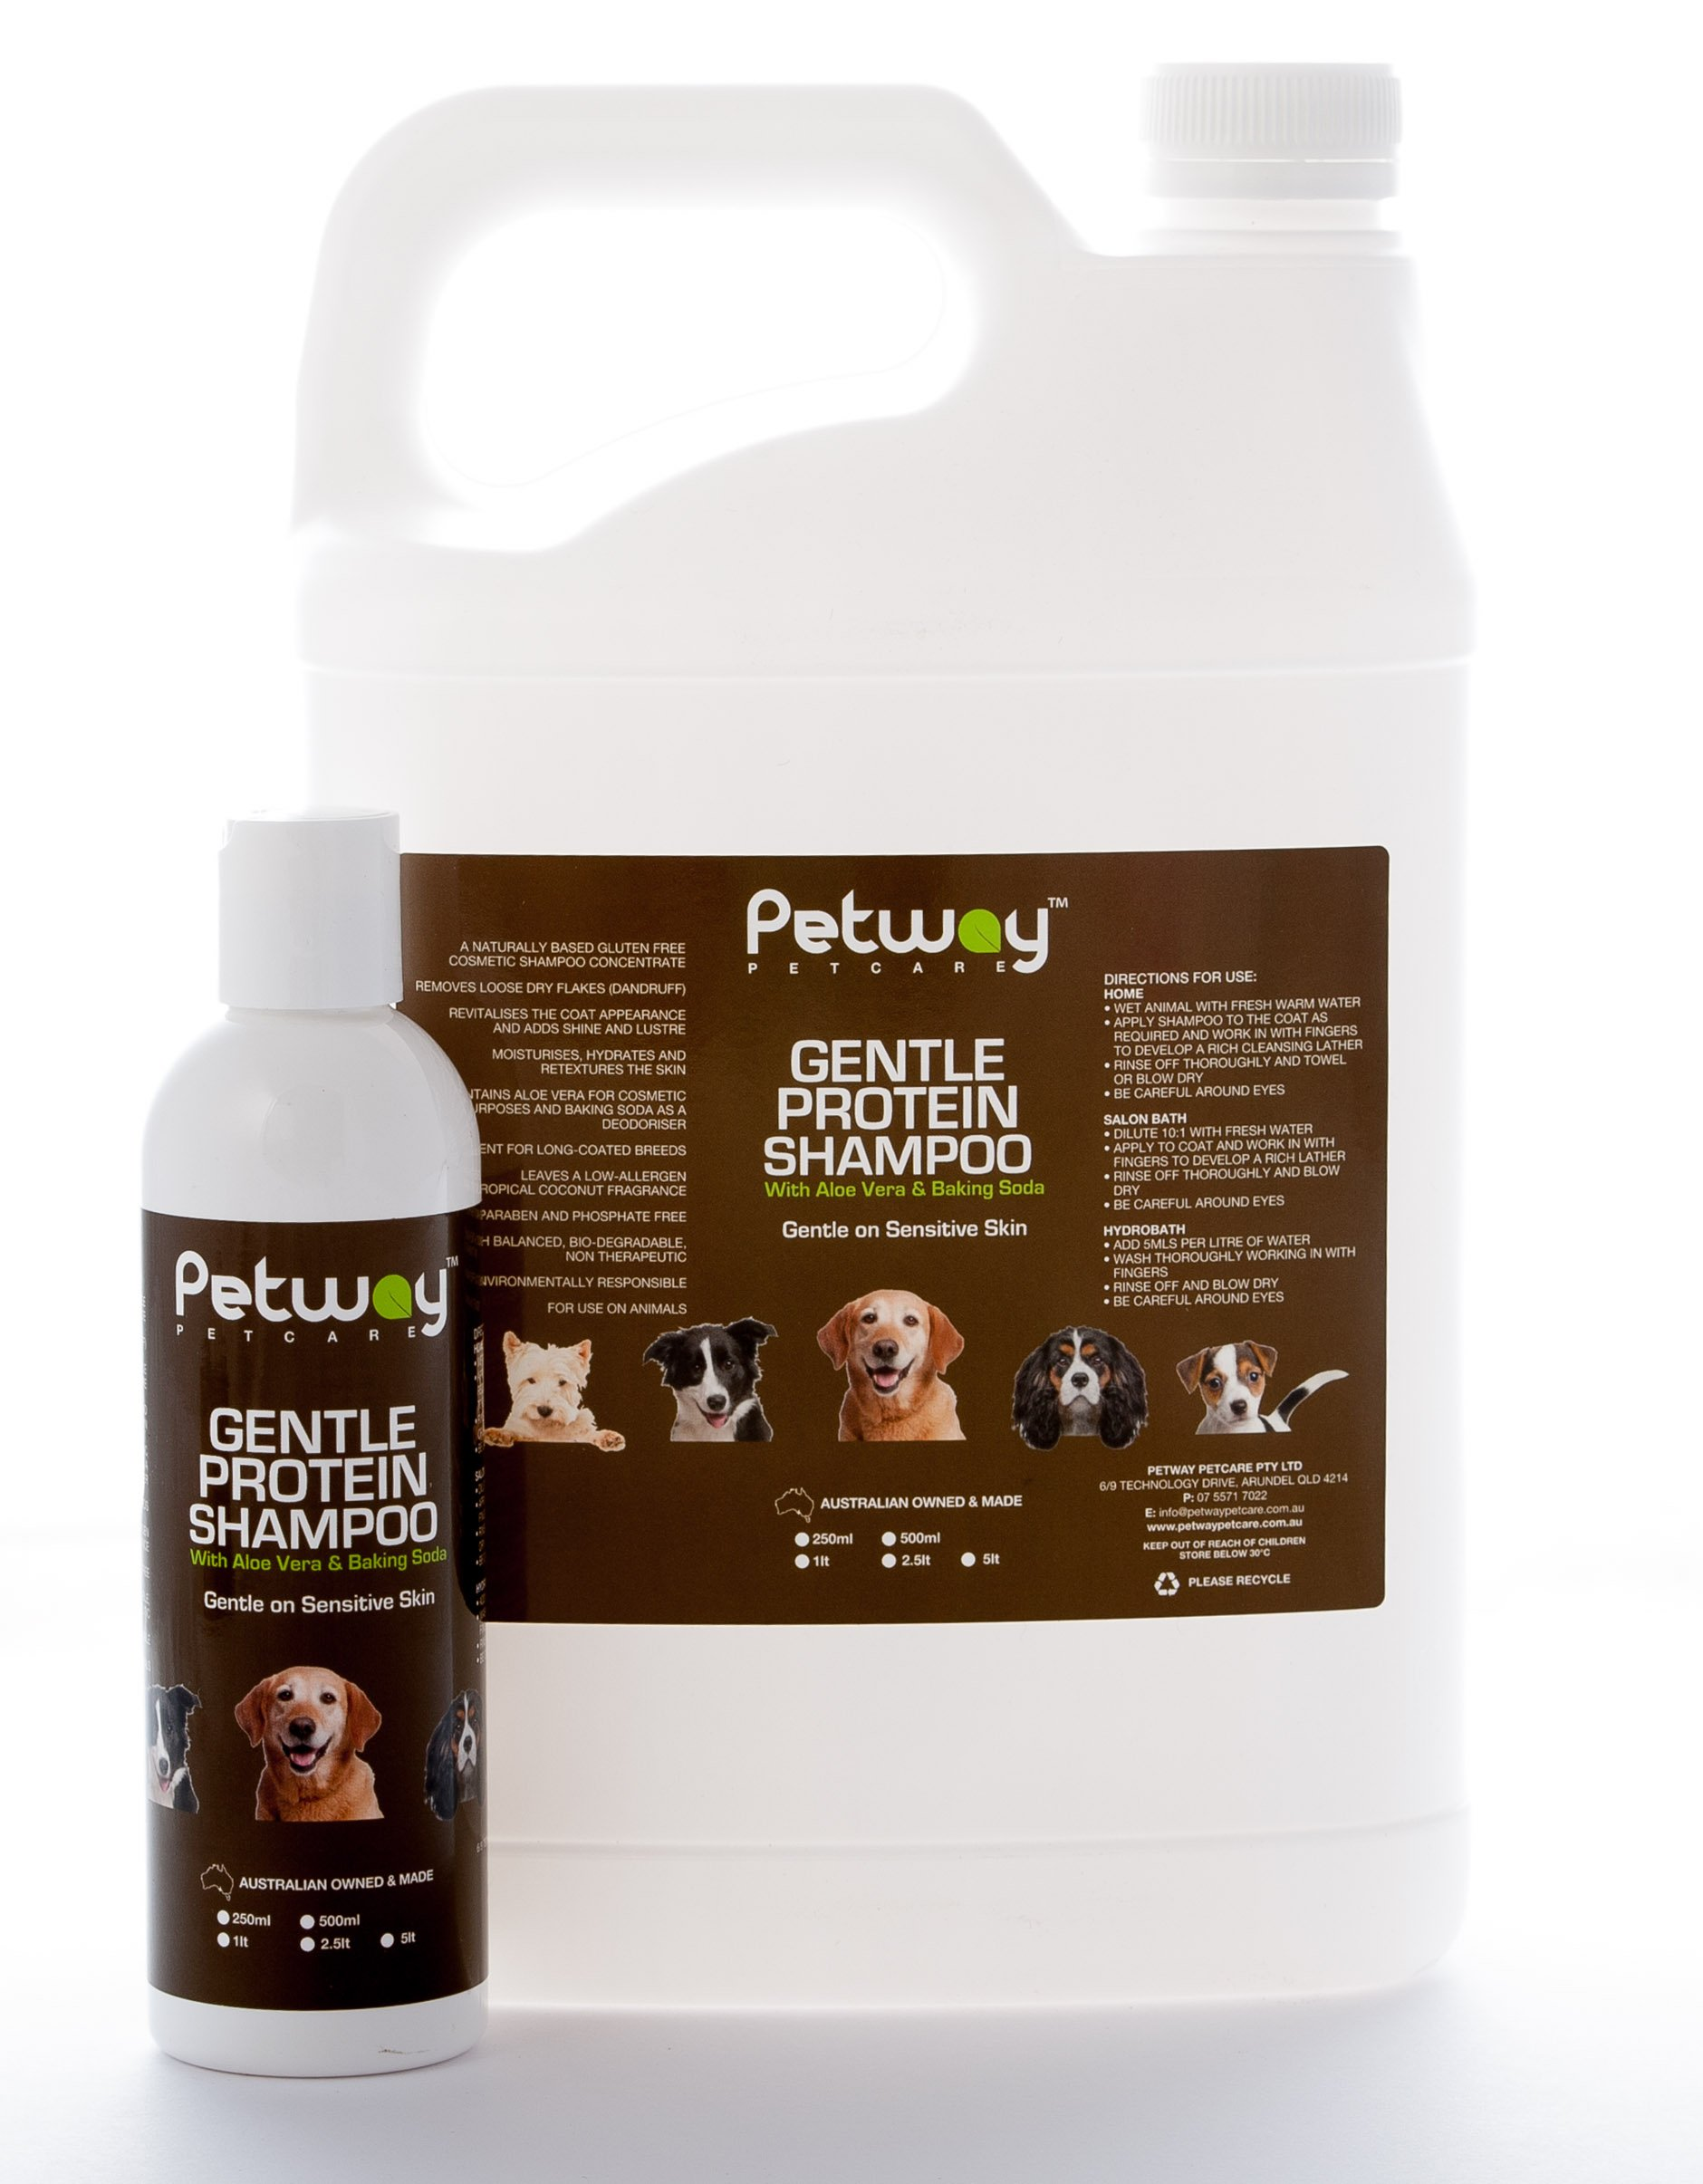 petway petcare gentle protein shampoo with aloe vera baking soda